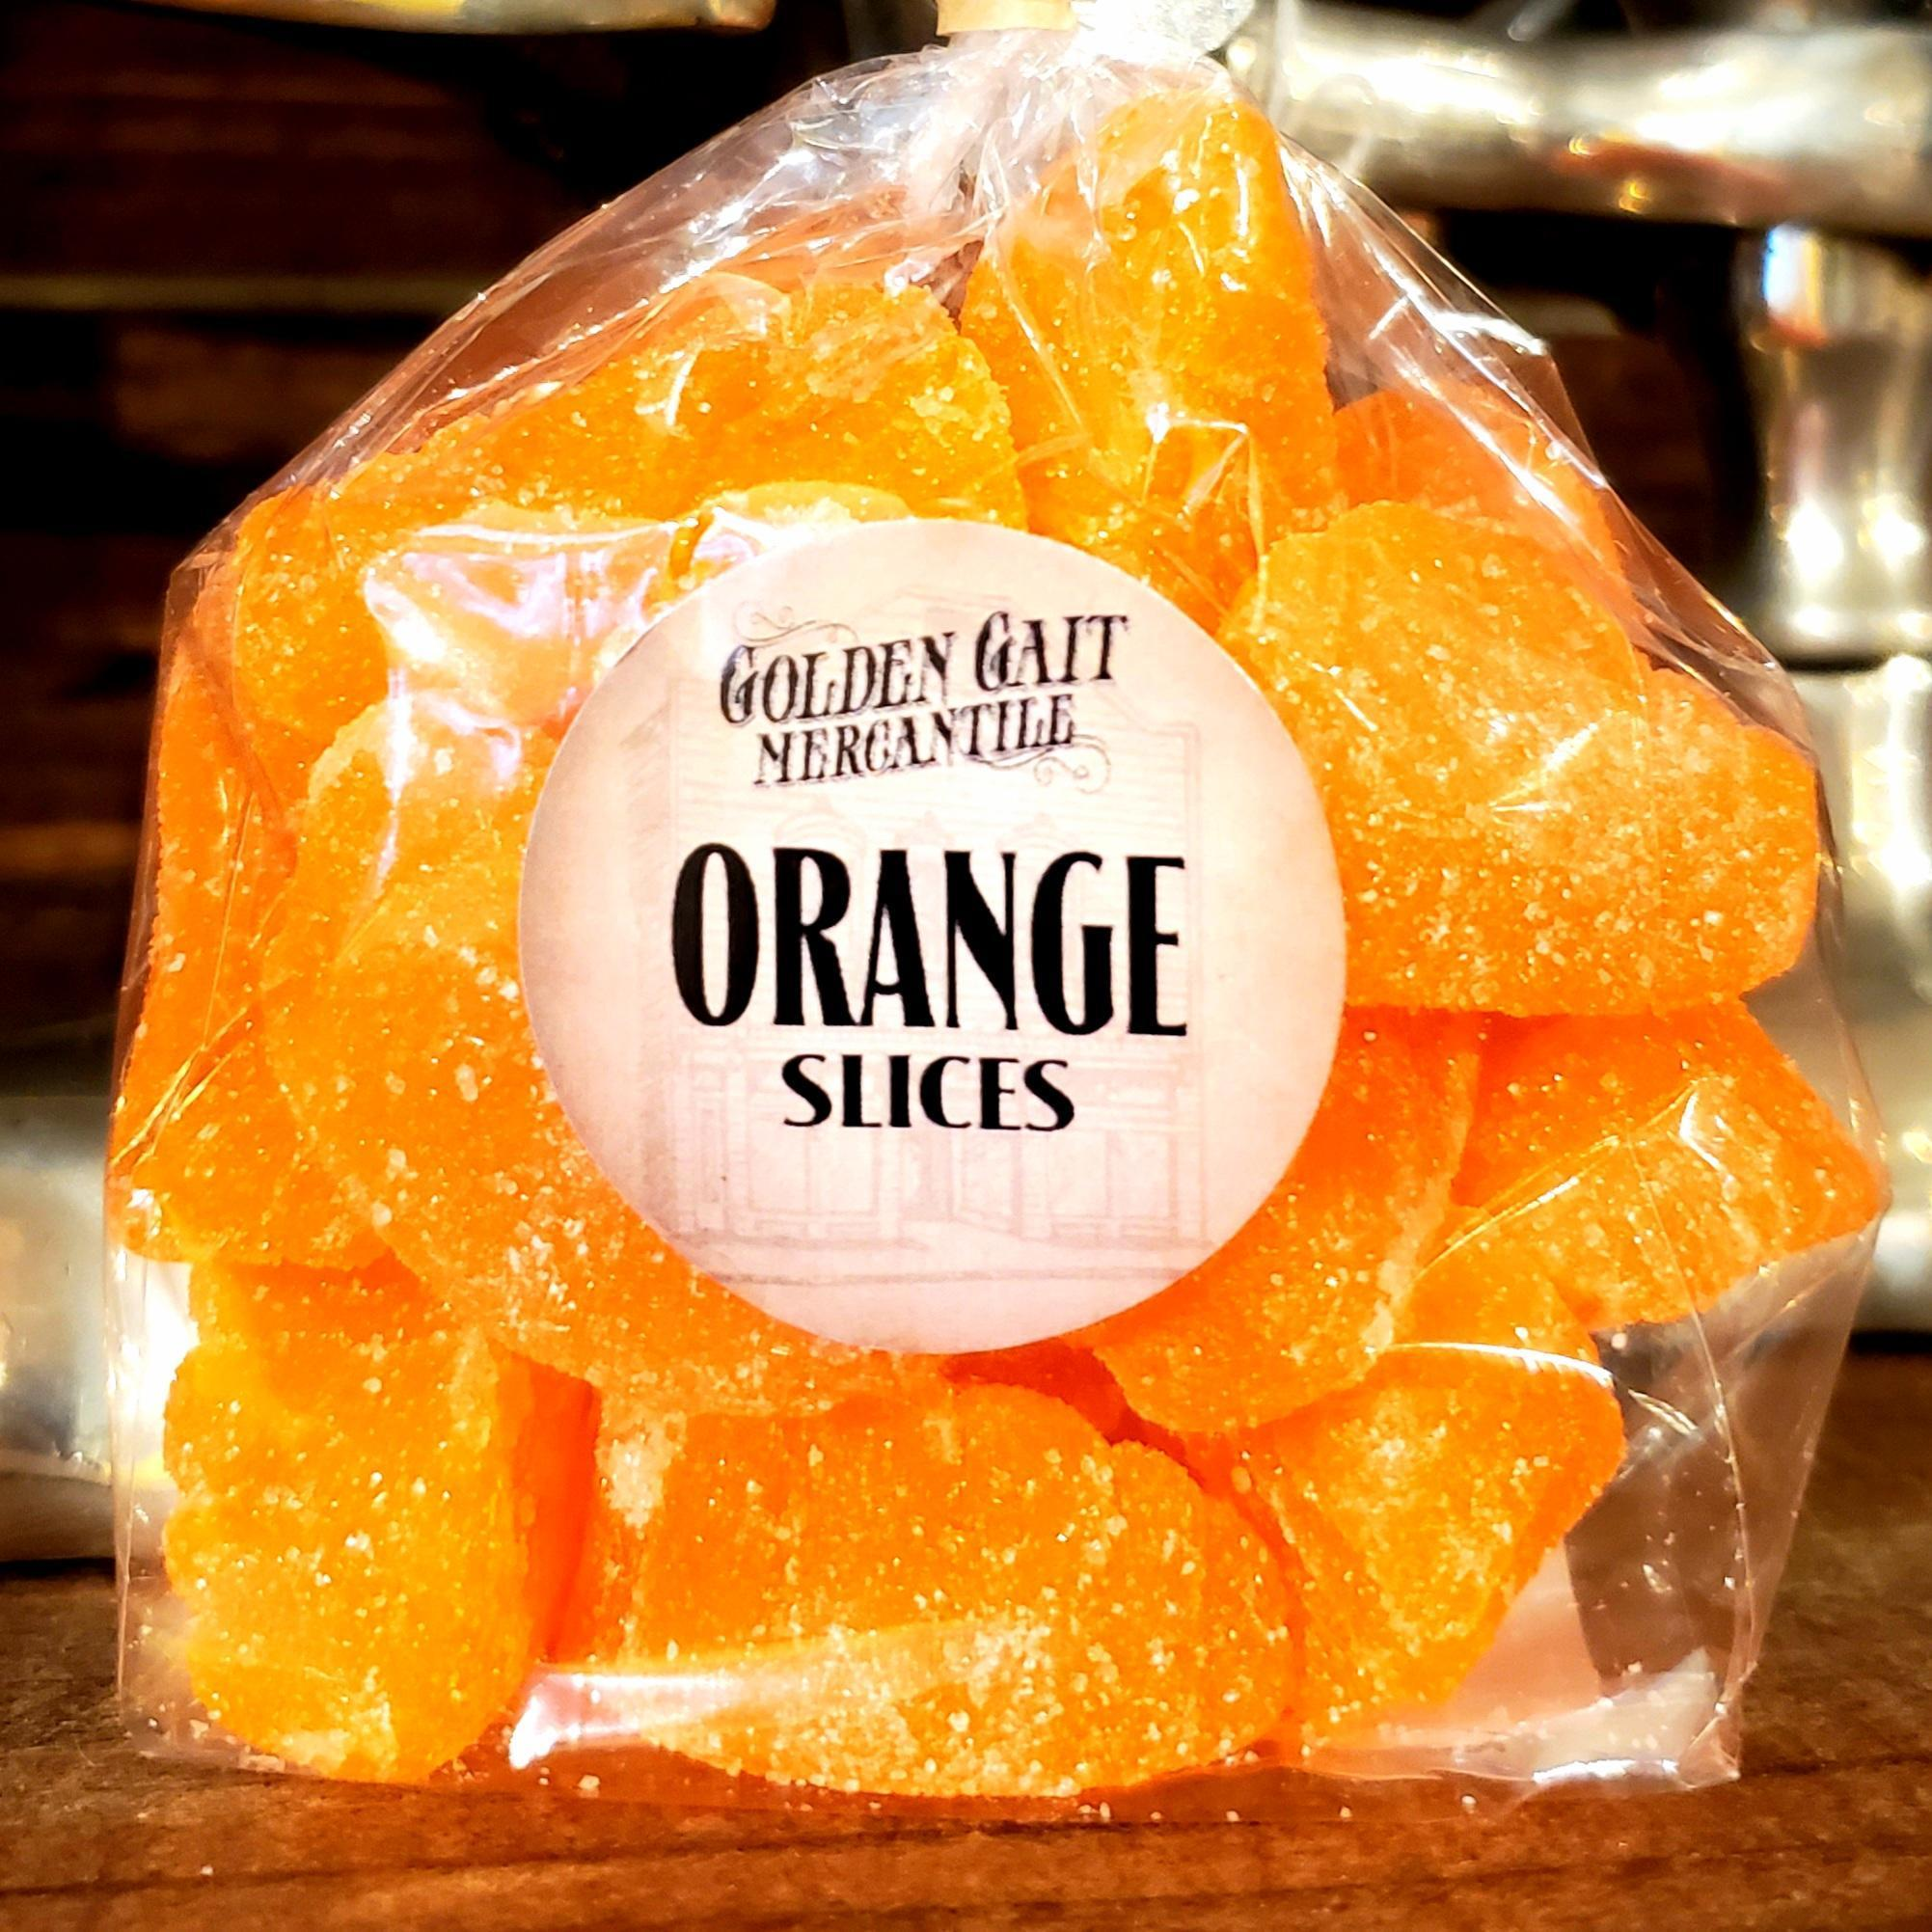 Orange Slices by the Golden Gait Mercantile